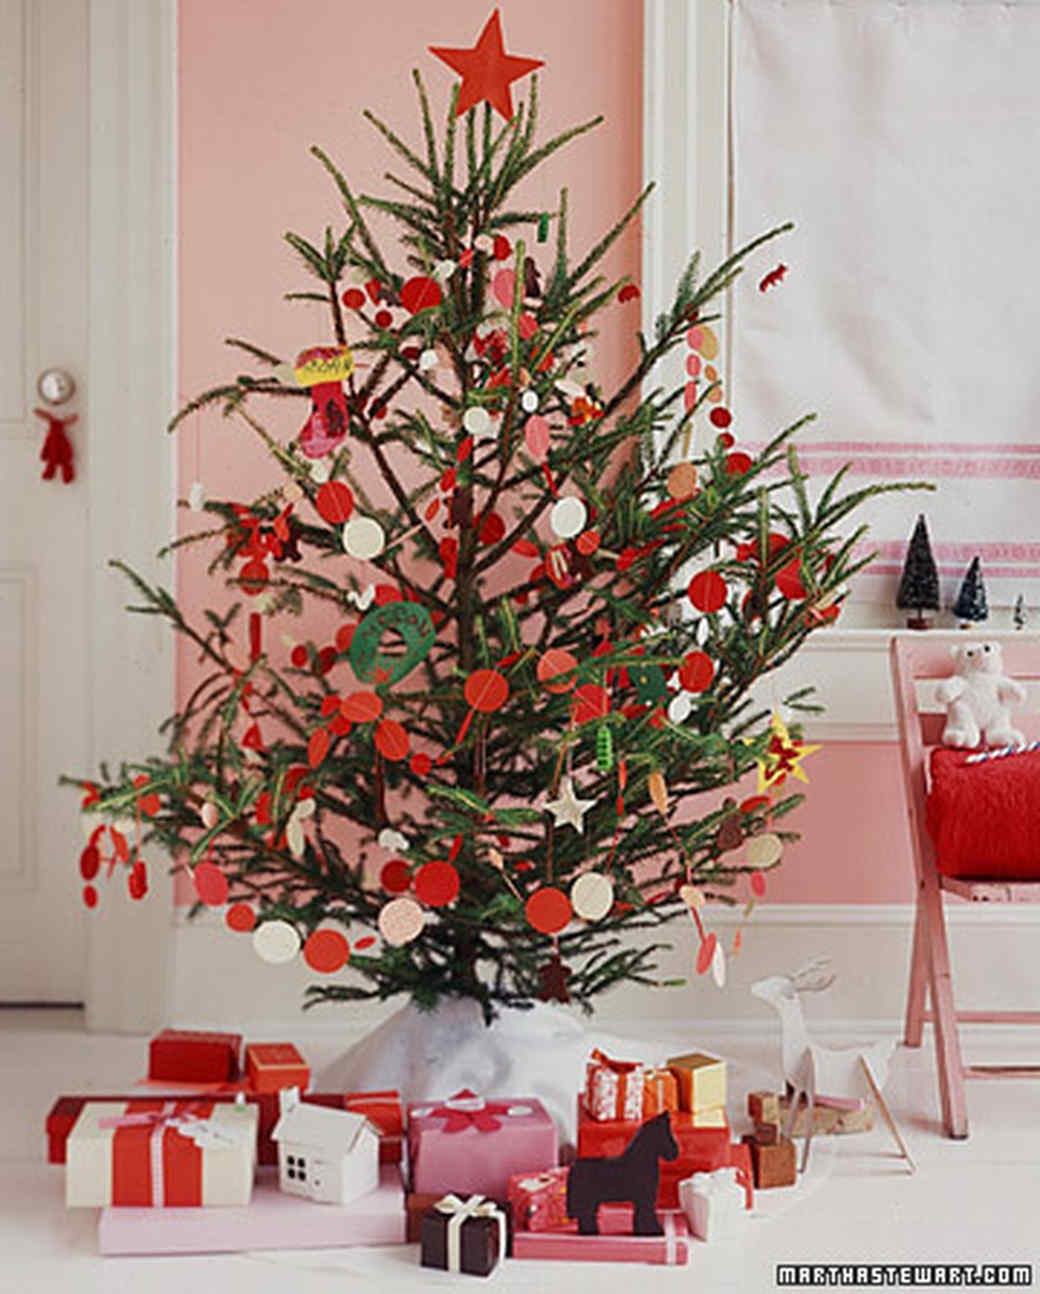 28 creative christmas tree decorating ideas martha stewart - Red Berry Christmas Tree Decorations